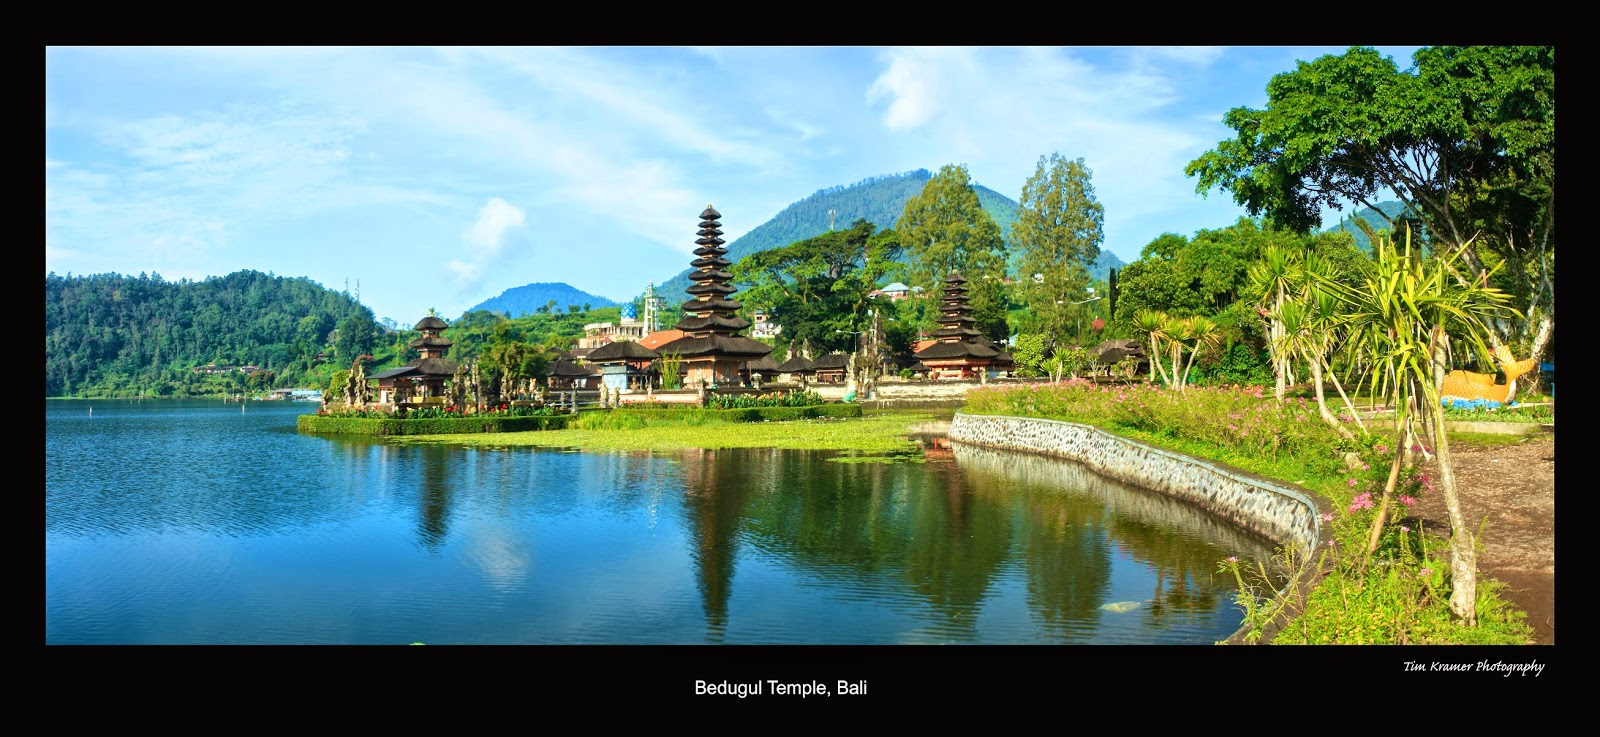 We left nice and early to go to Bedugul Temple. We got there nice and early  before all the tourists arrived so I pretty much had the place to myself  (and ...